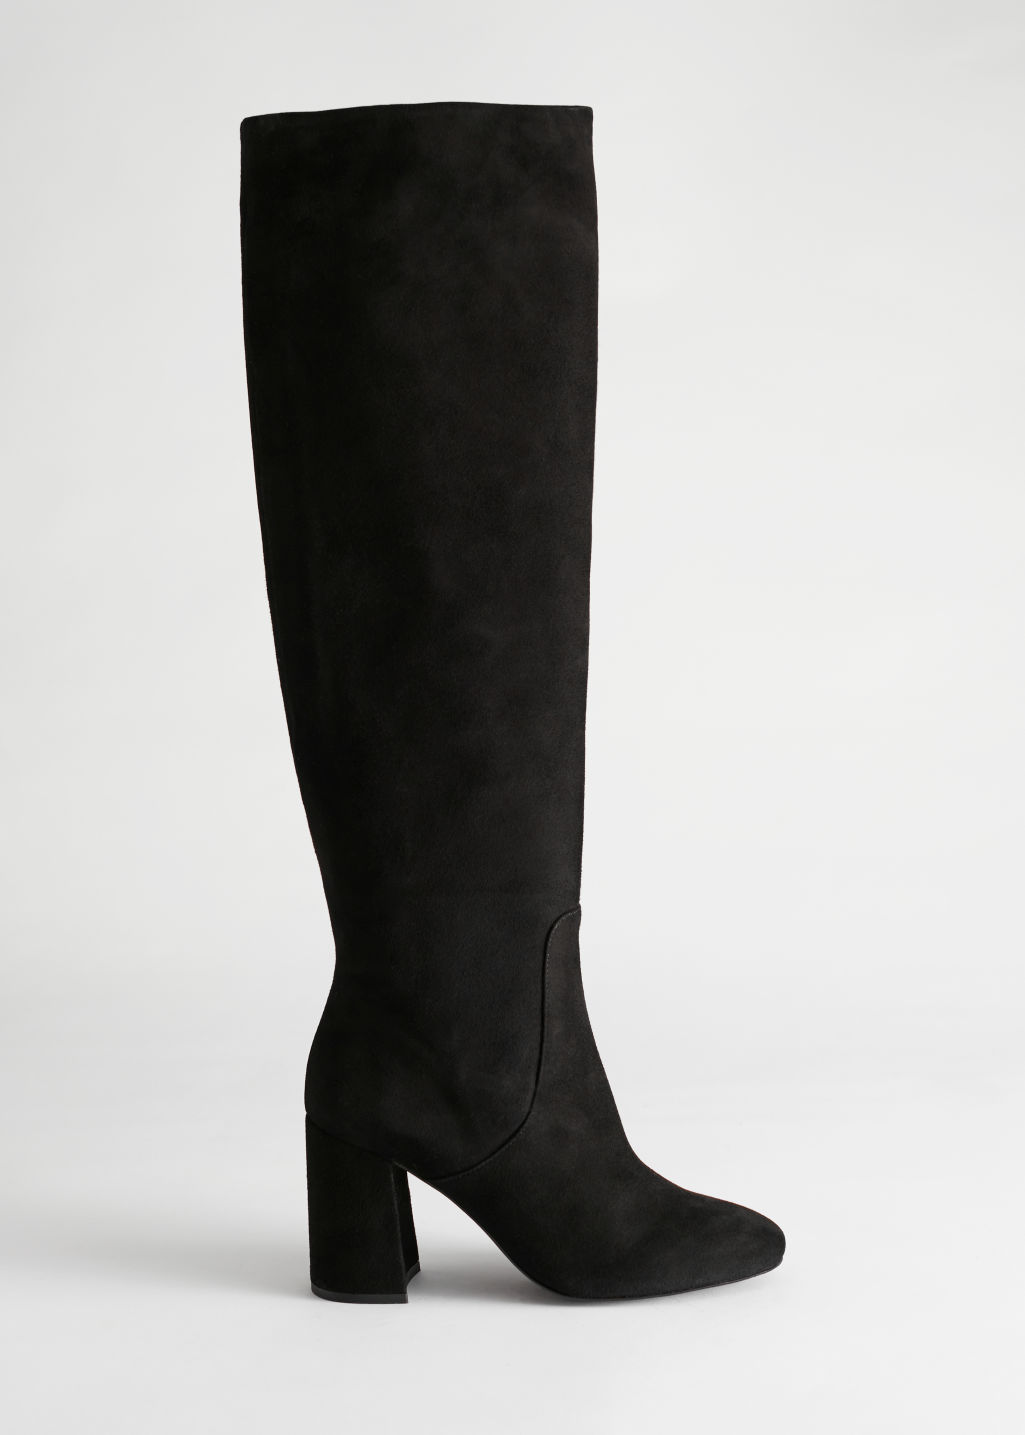 StillLife Side Image of Stories Knee High Suede Boots in Black